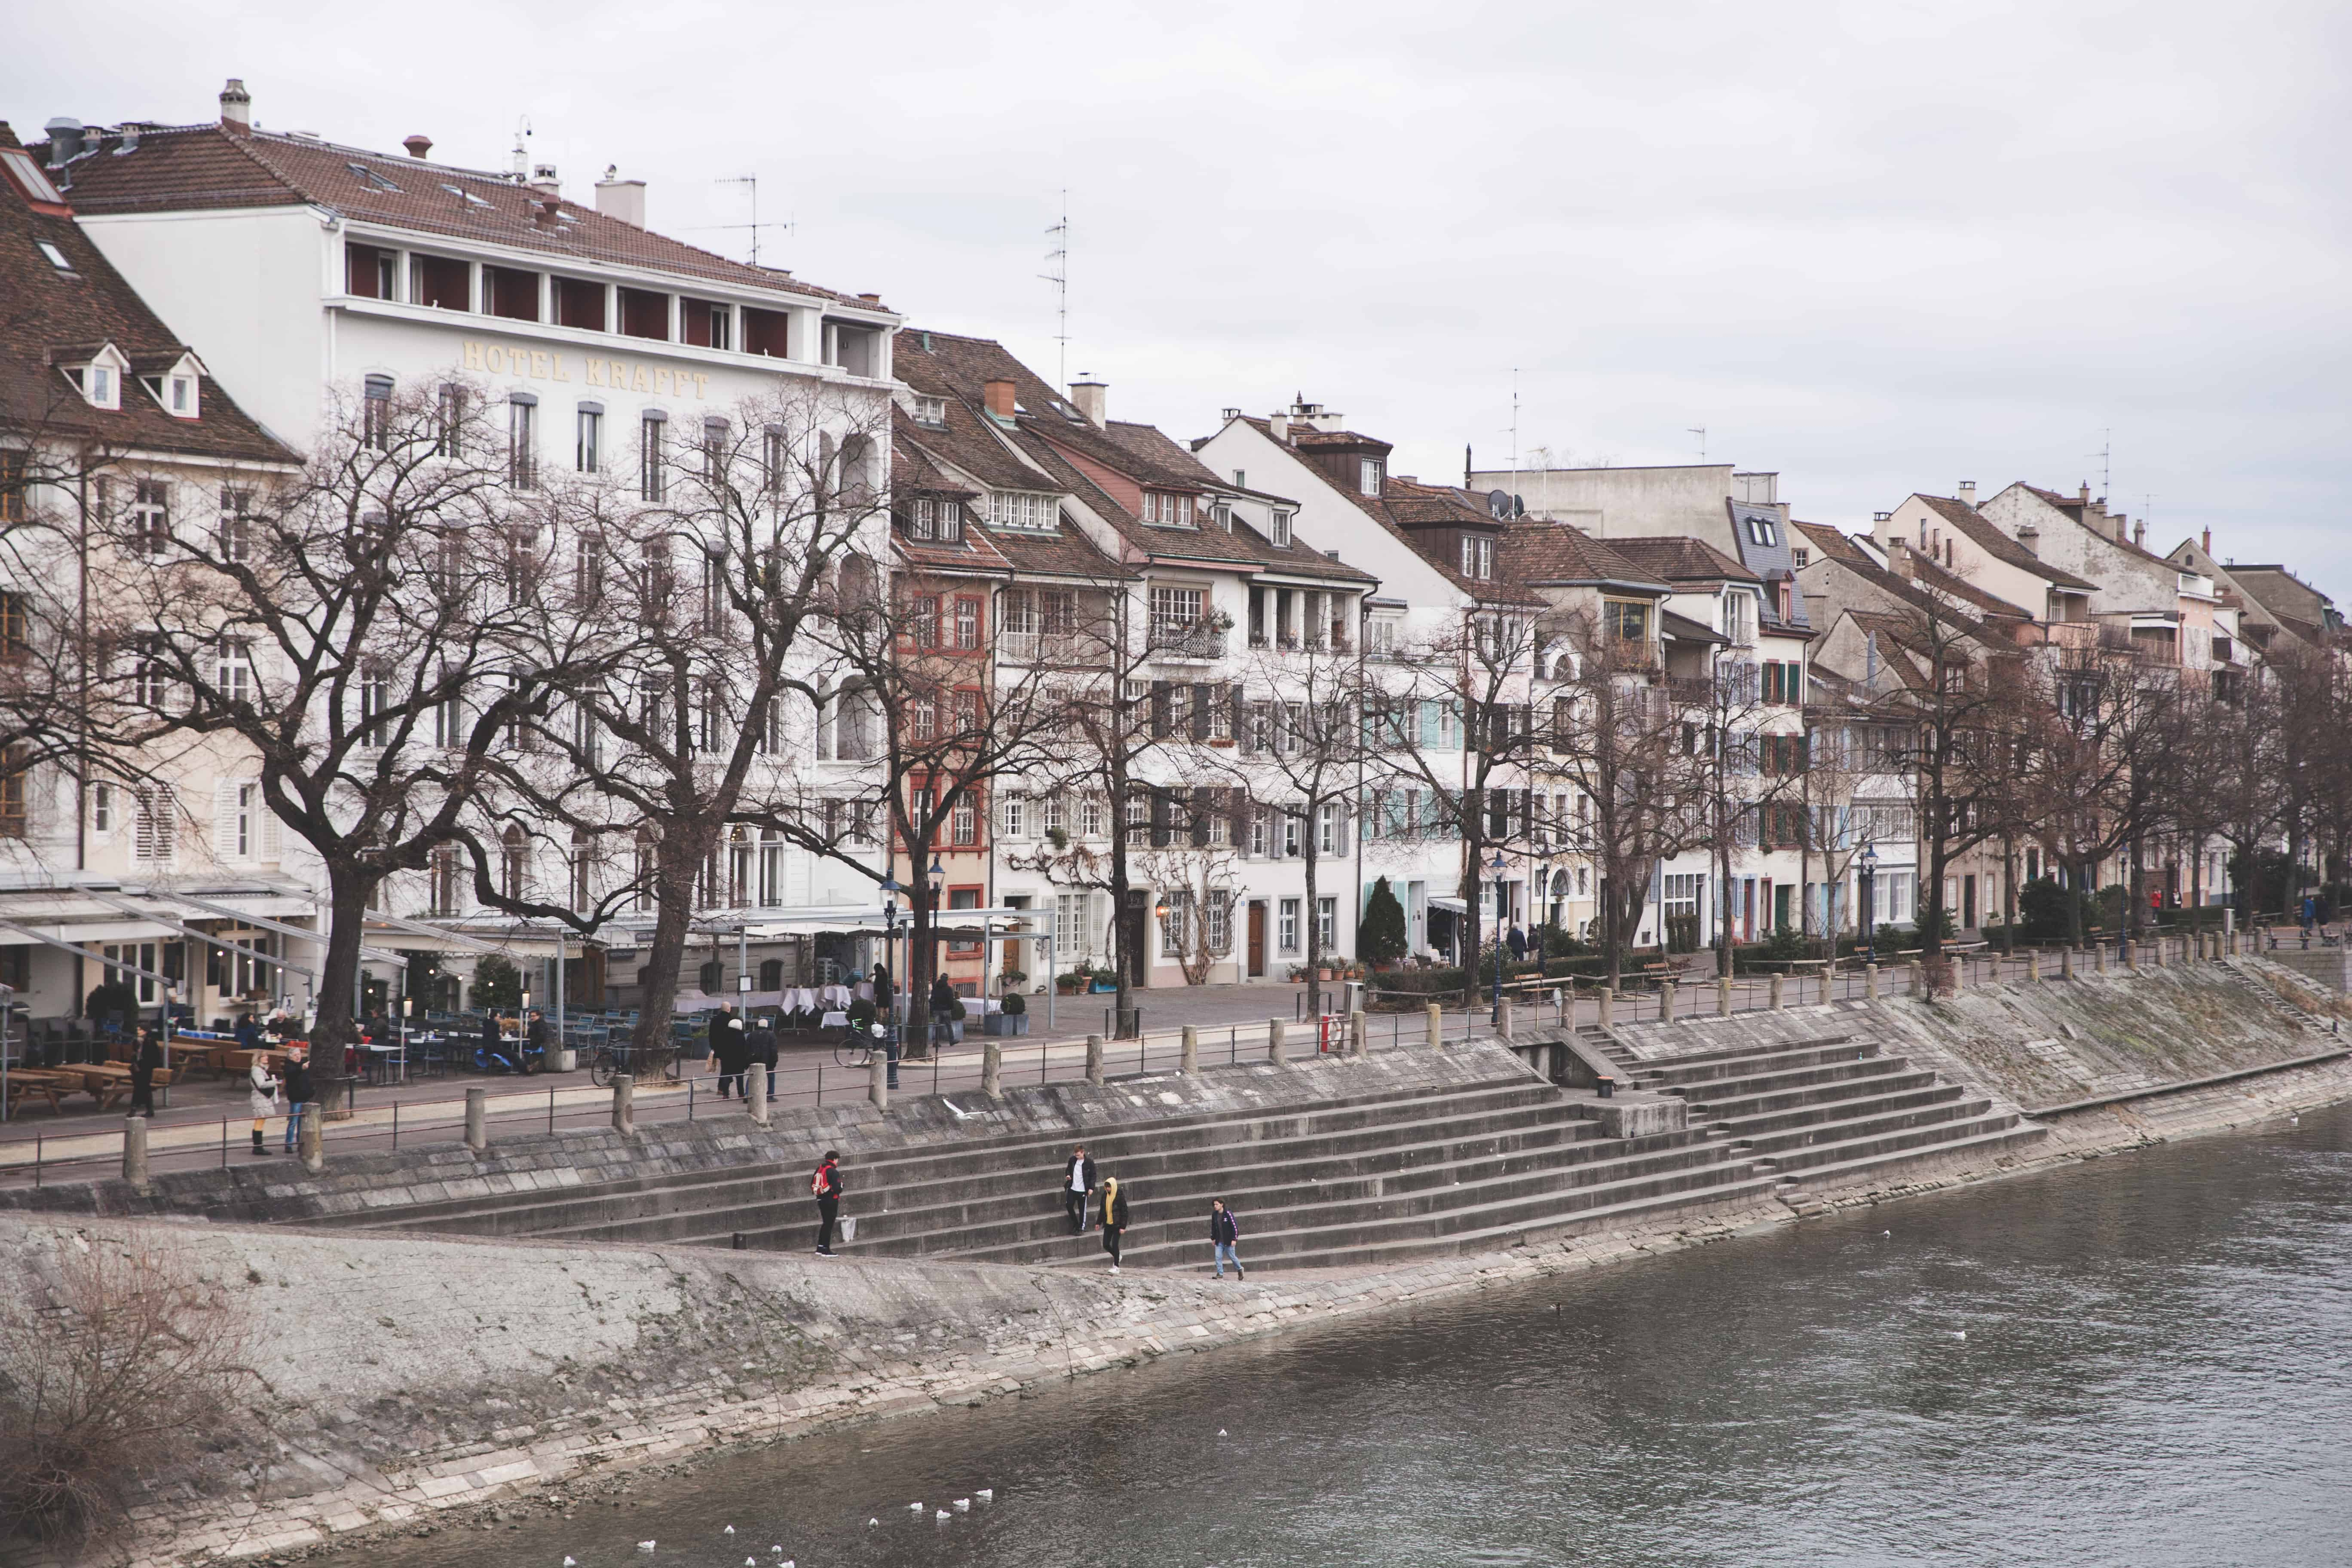 Buildings along the Rhine River that runs through Basel, Switzerland